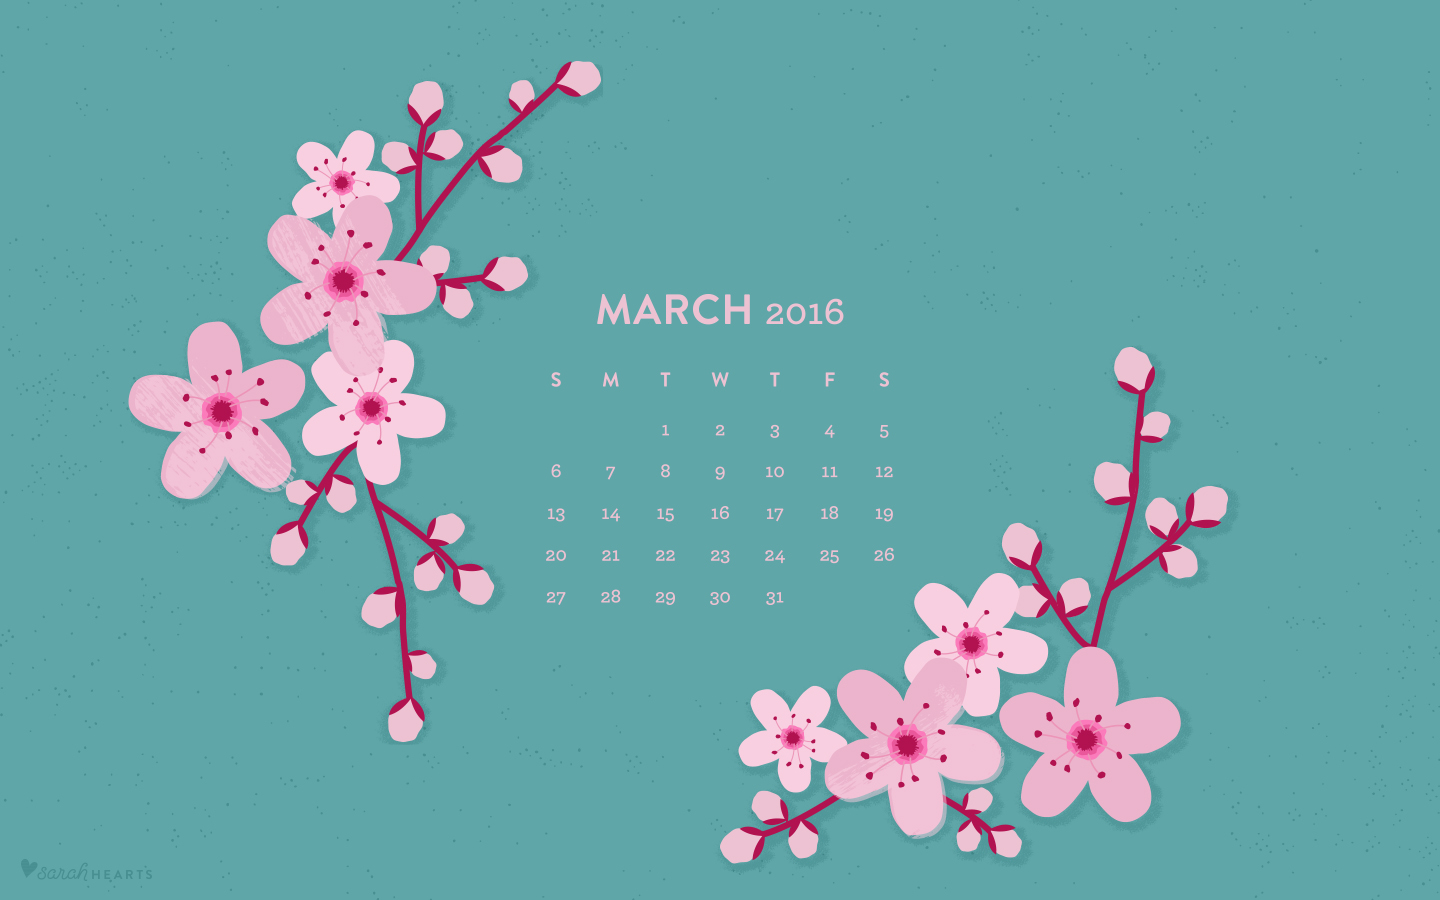 March 2016 Cherry Blossom Calendar Wallpaper   Sarah Hearts 1440x900